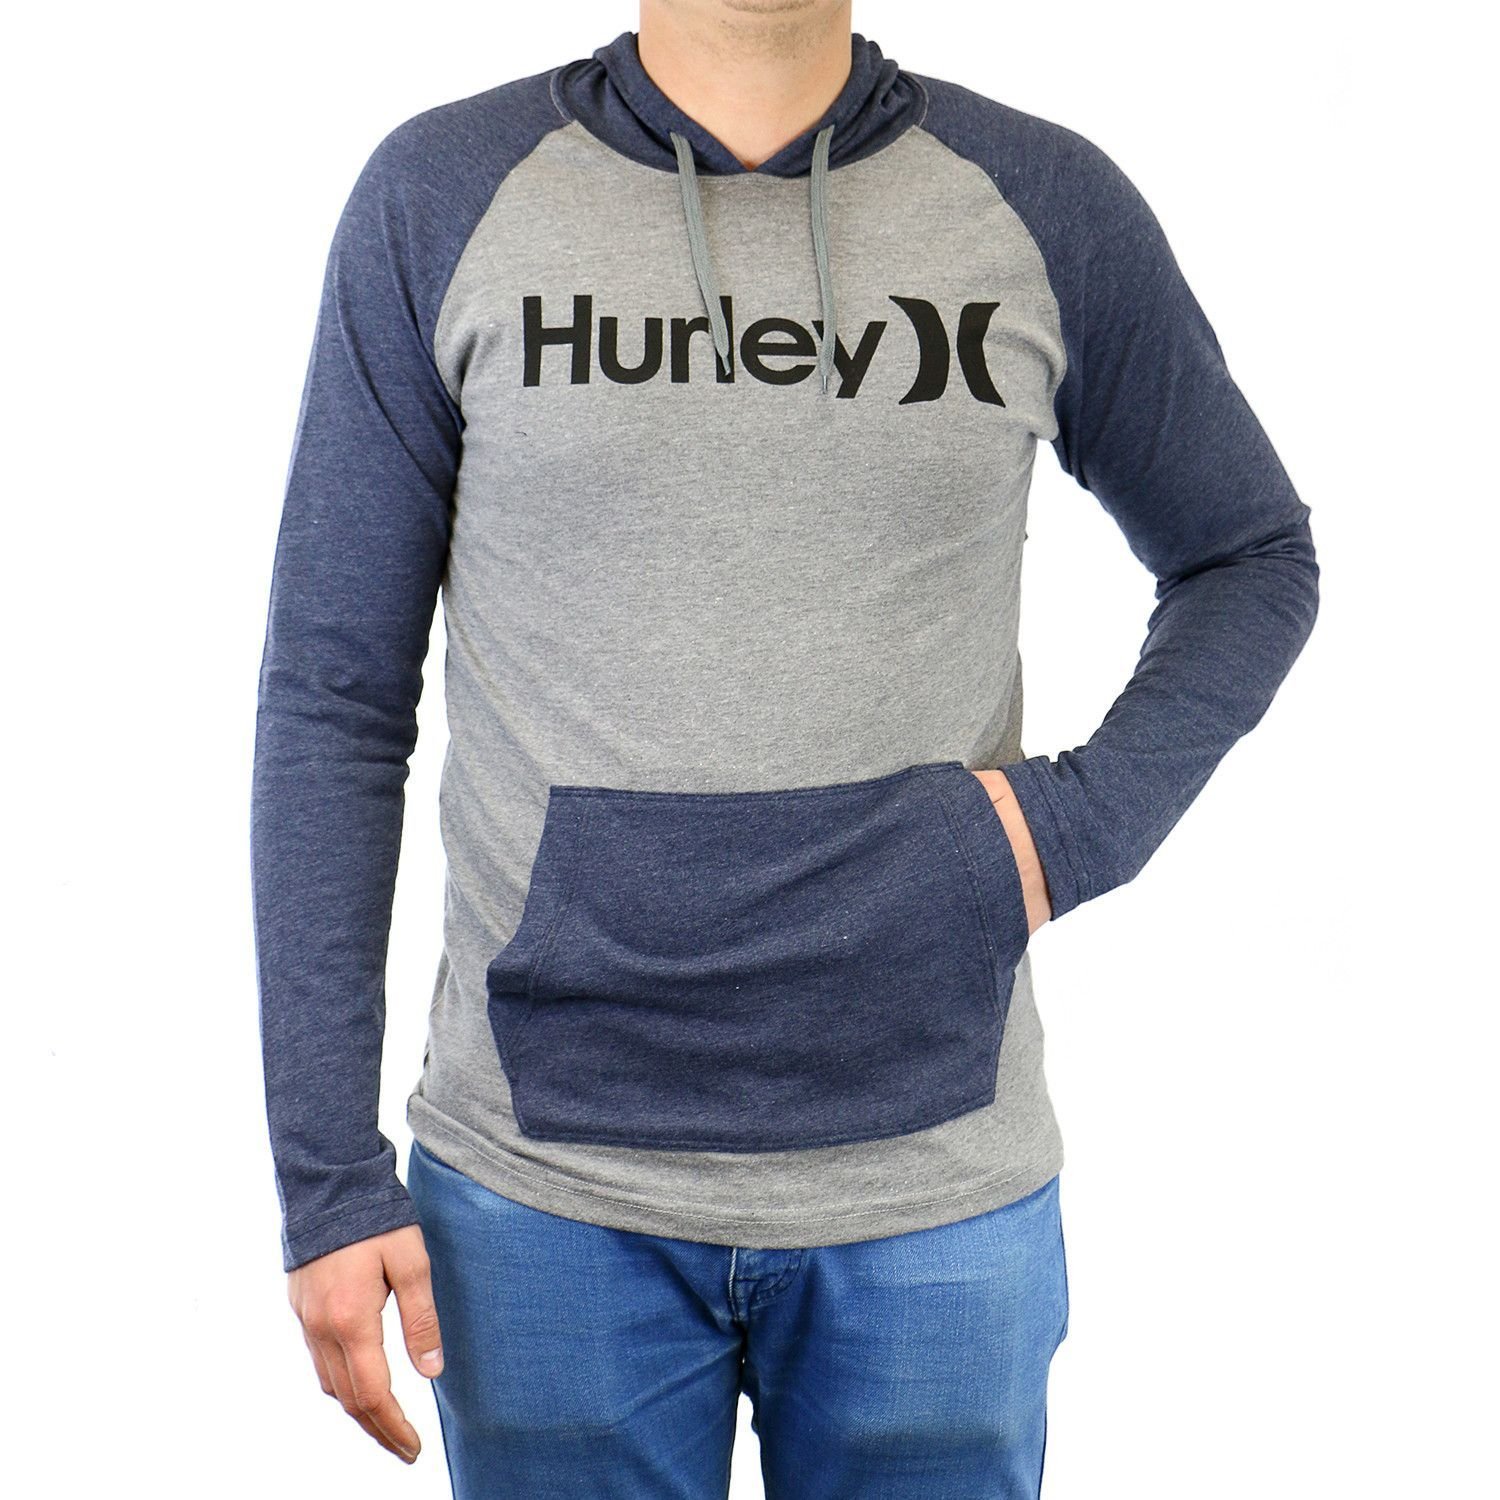 689e36284366 Hurley One and Only Raglan Jersey Hooded Pullover Hoodie - Mens ...